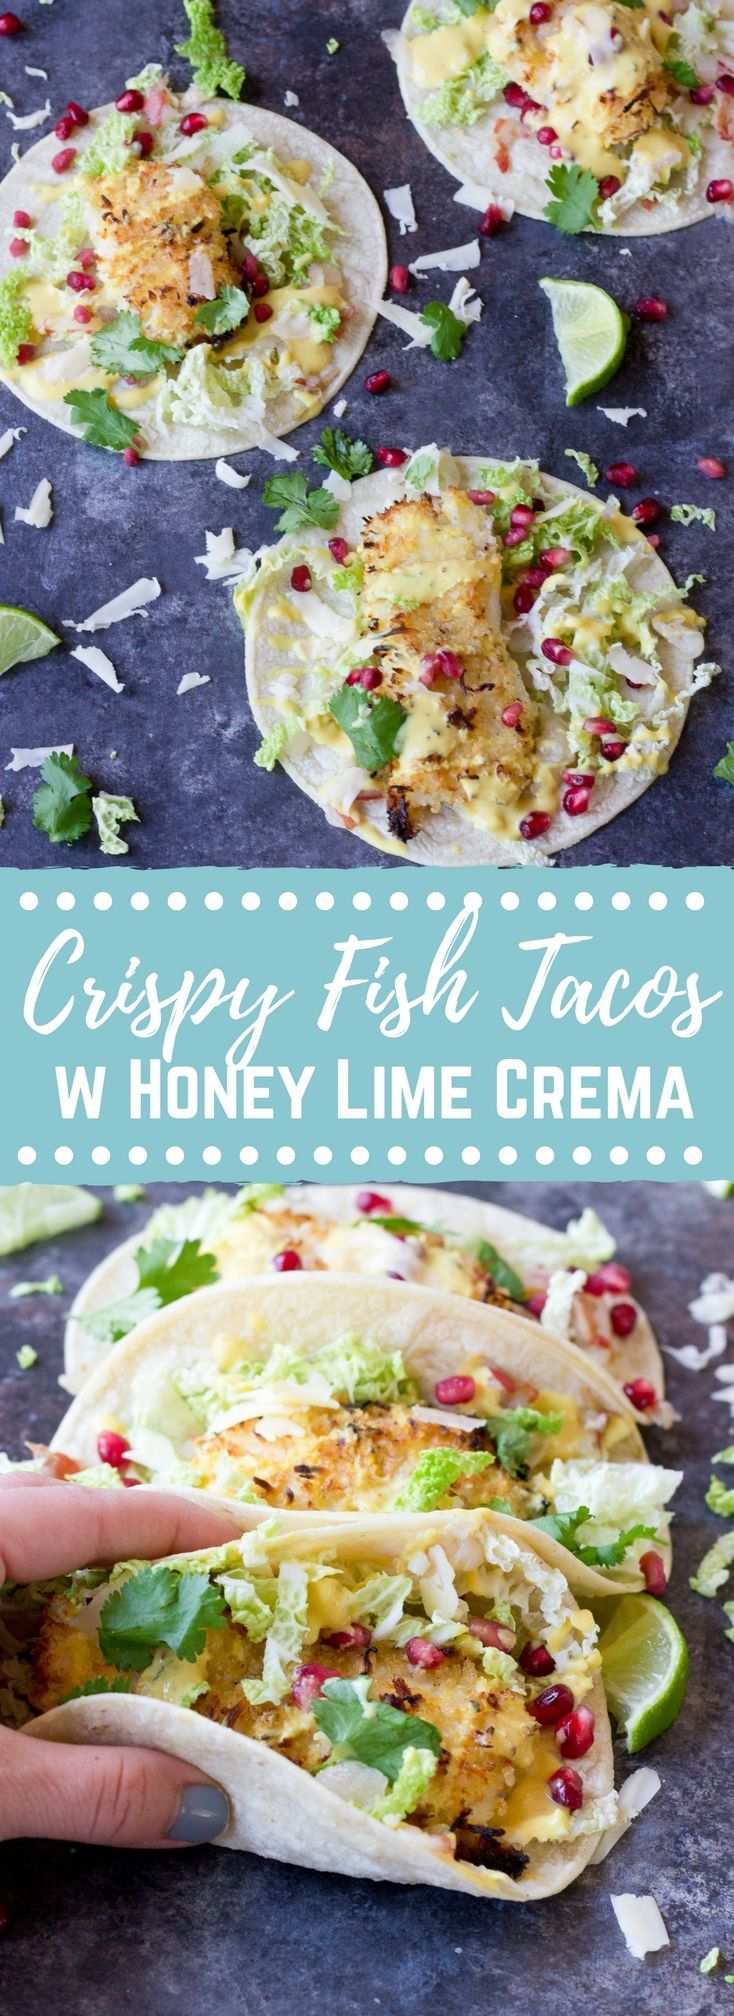 Crazy for tacos? Add these Crispy Fish Tacos to your menu! Crispy baked cod topped with pomegranates, shredded pear, and Honey Lime Crema. Simple to make at home!